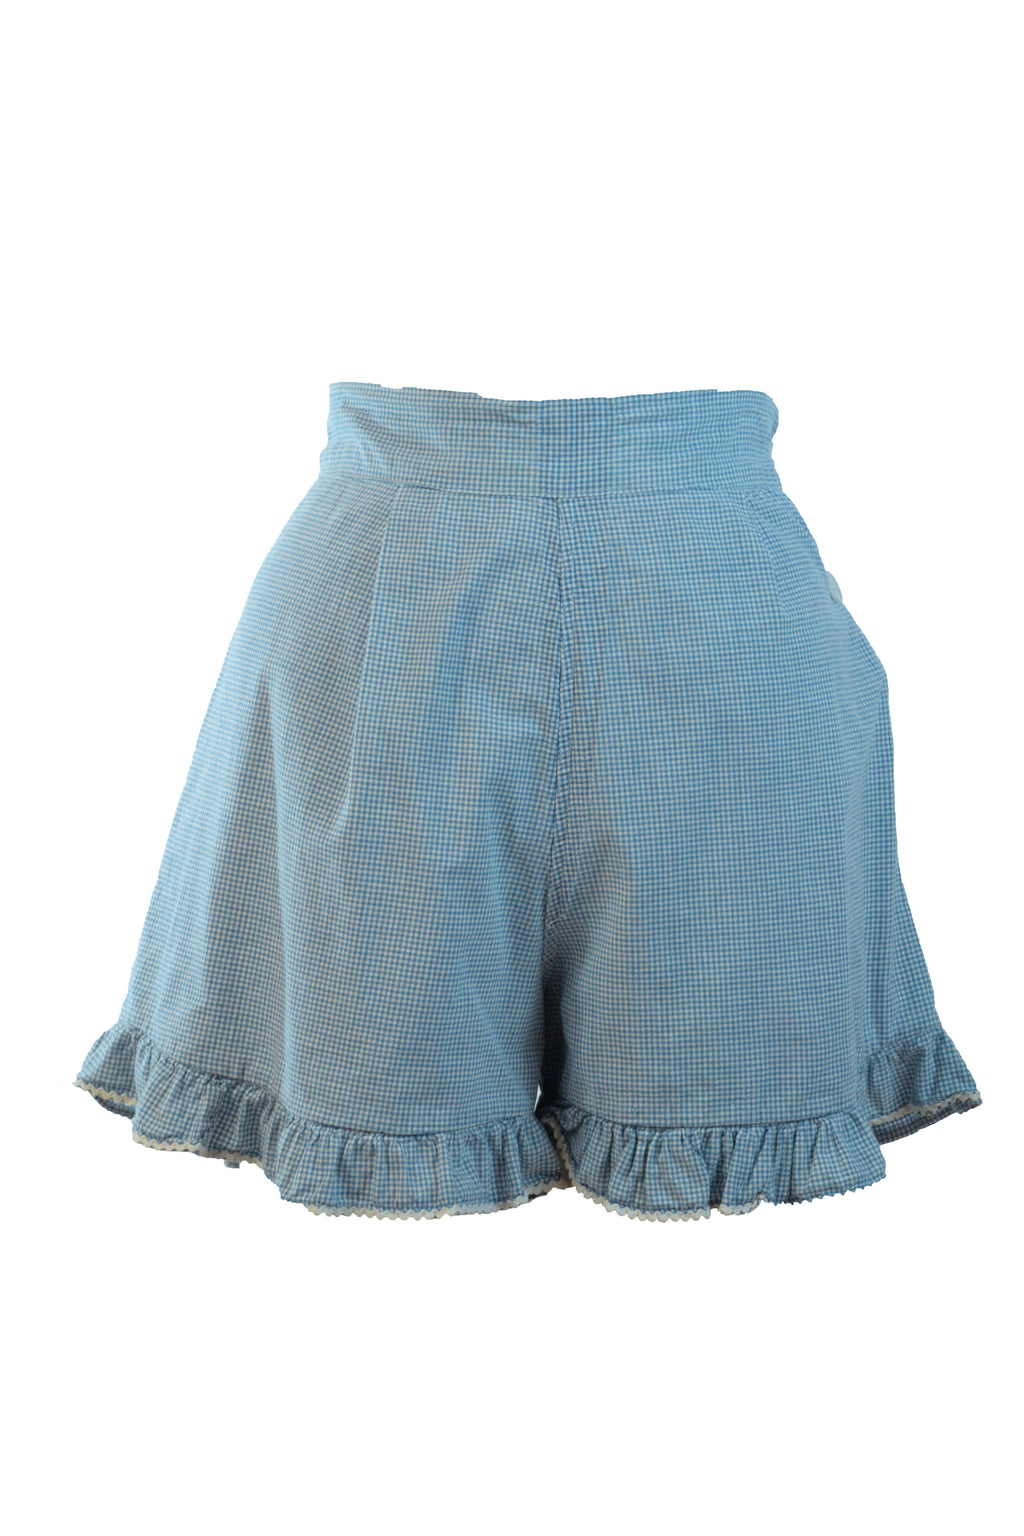 Charming 1930s Blue and White Gingham Shorts with Ruffled Hem